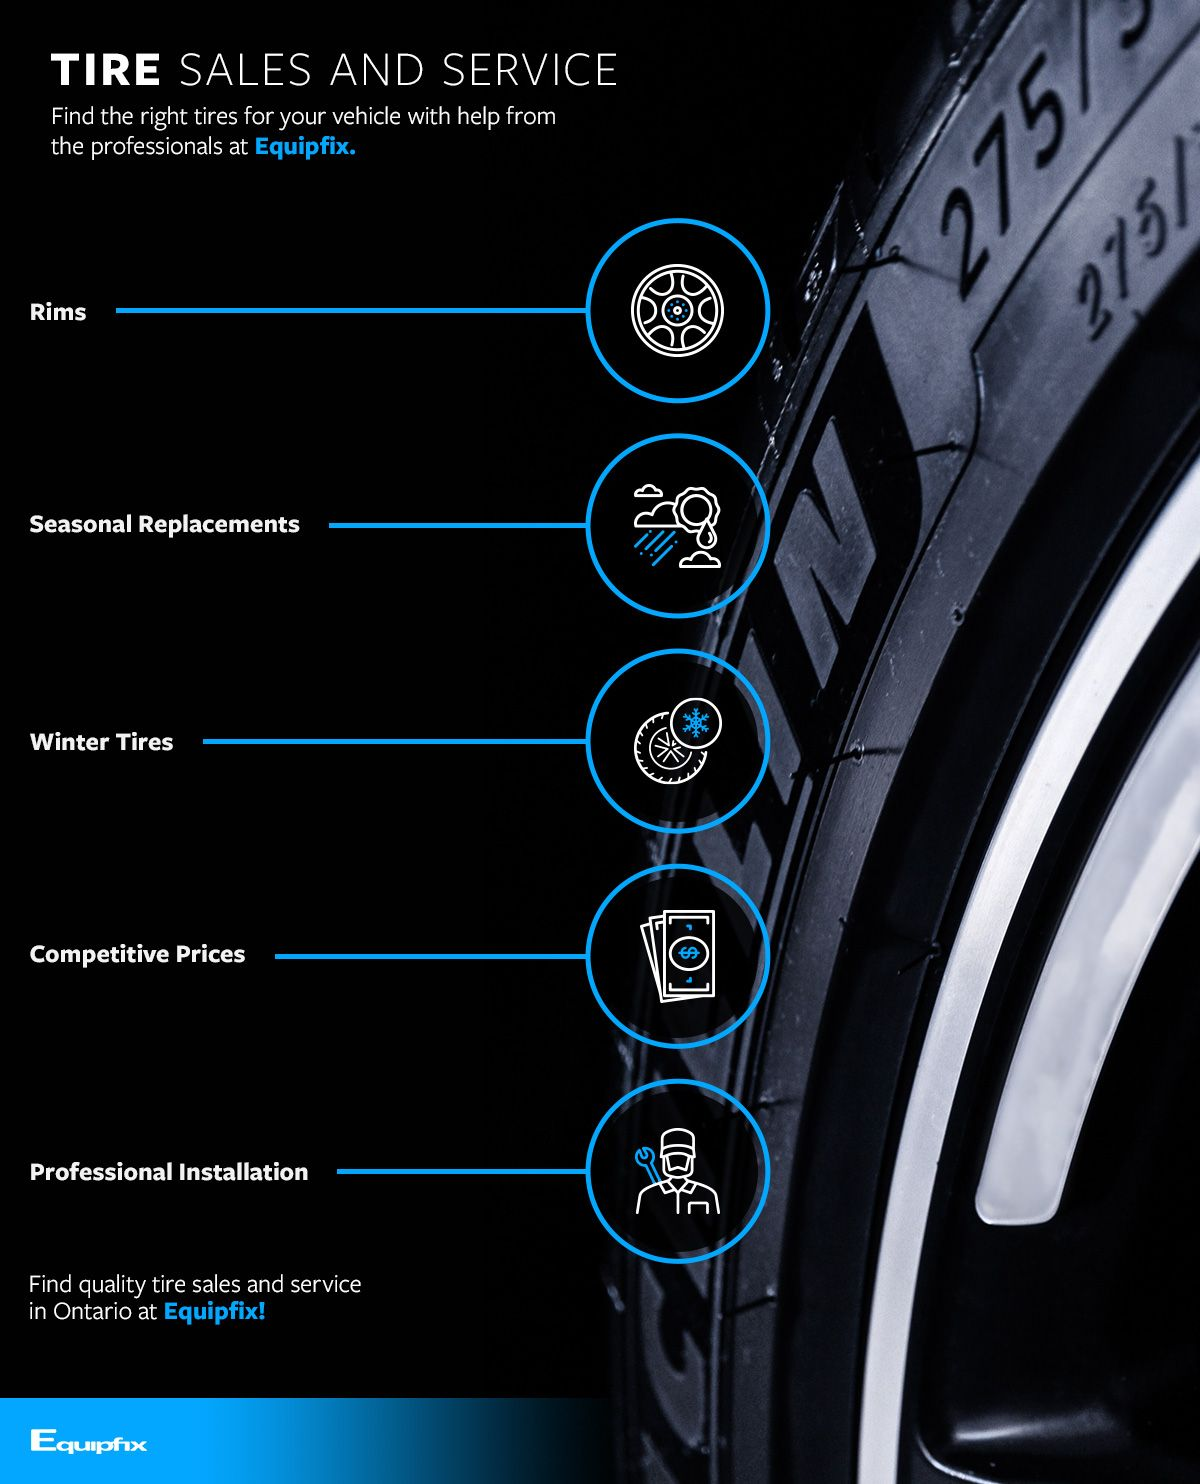 Tire Sales & Service Infographic